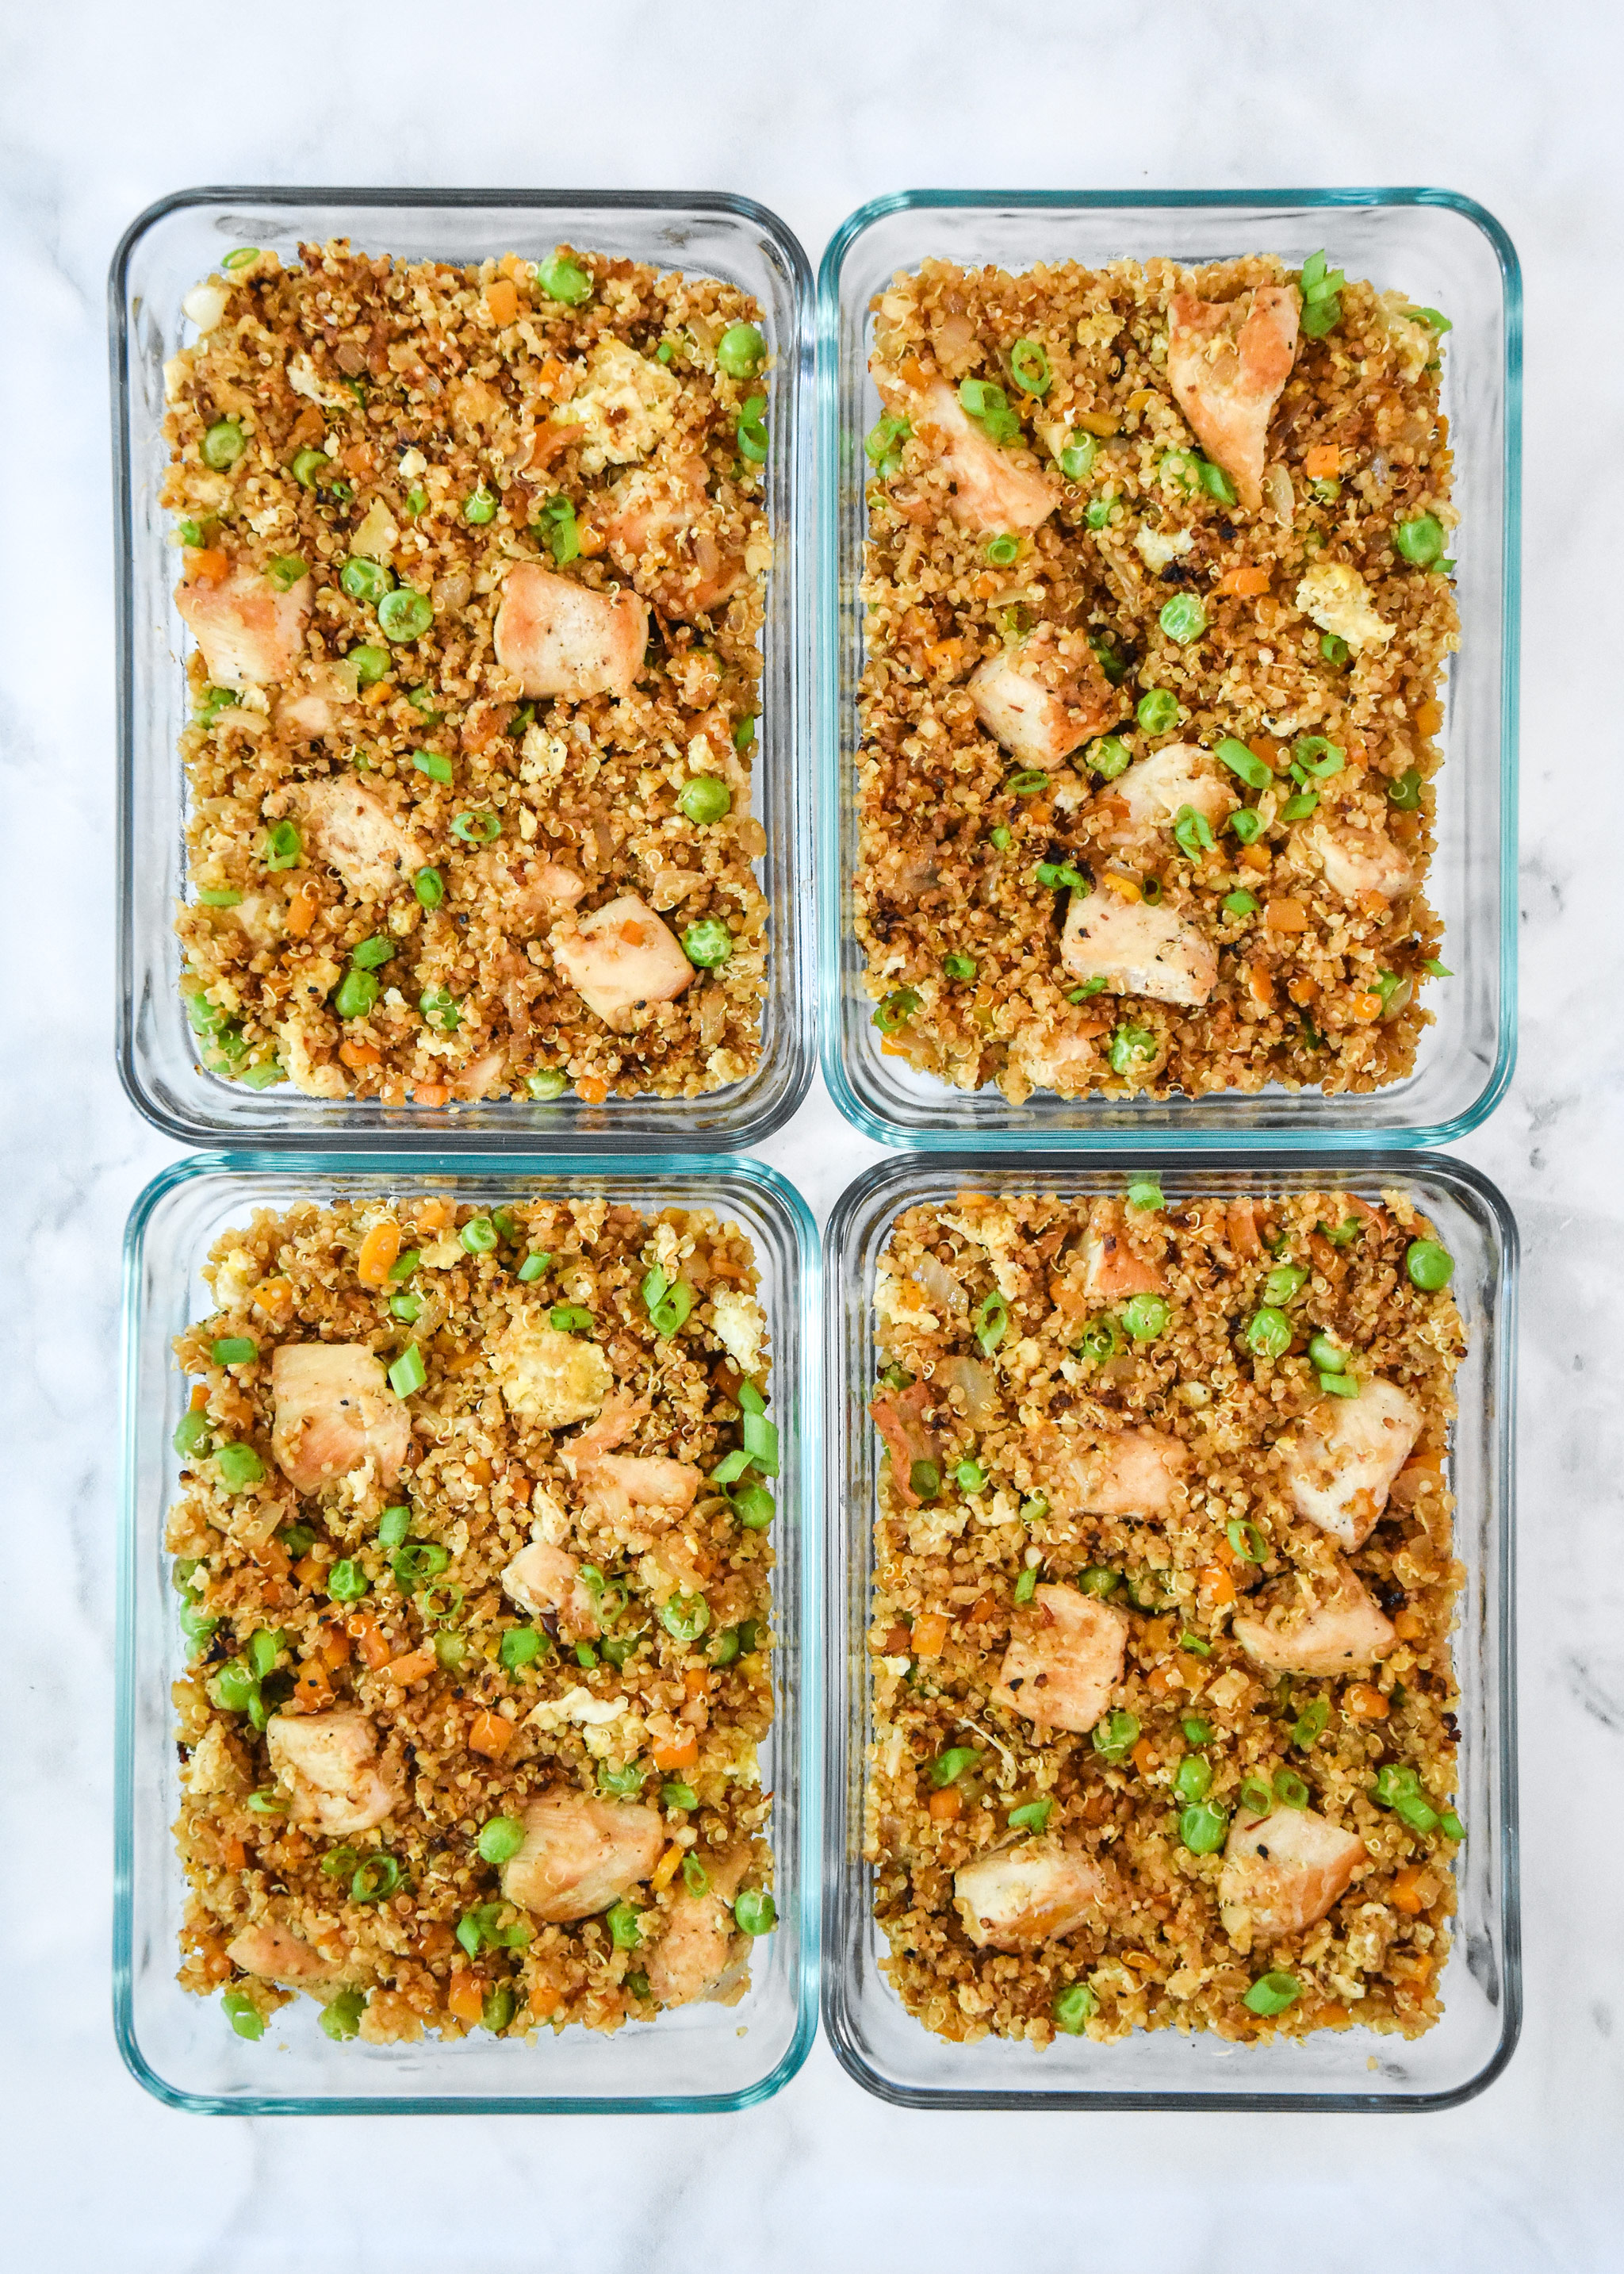 four glass meal prep containers of chicken quinoa fried rice.